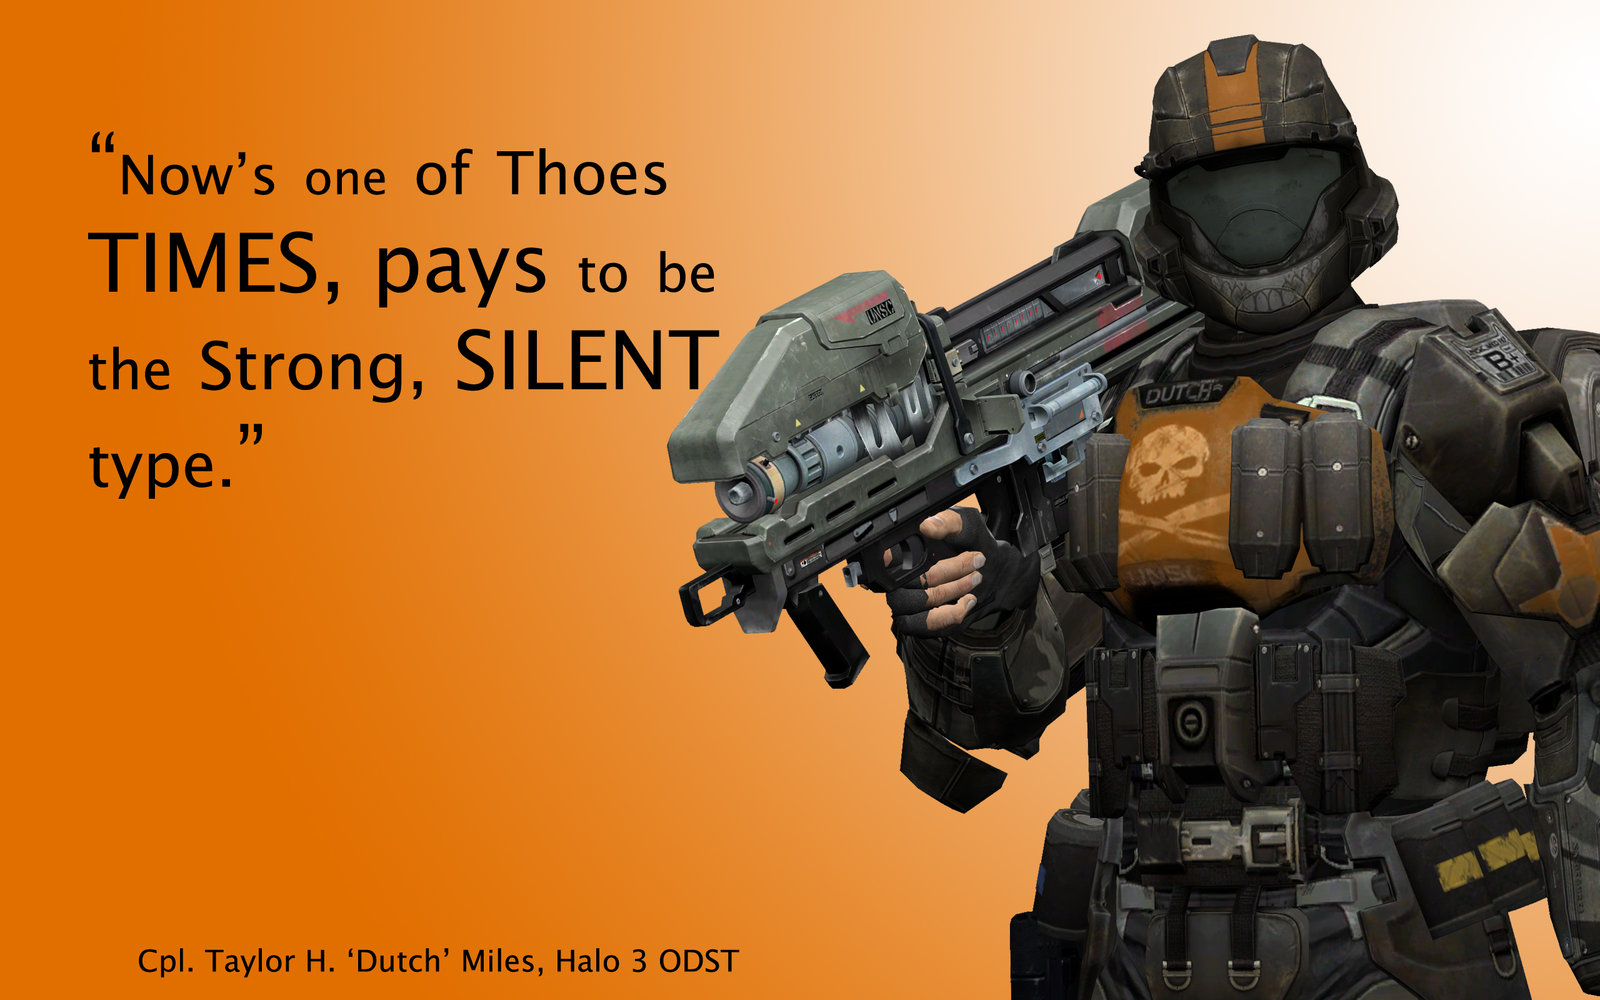 halo_3_odst_wallpaper__dutch_by_kommandant4298-d8uwuzt.jpg